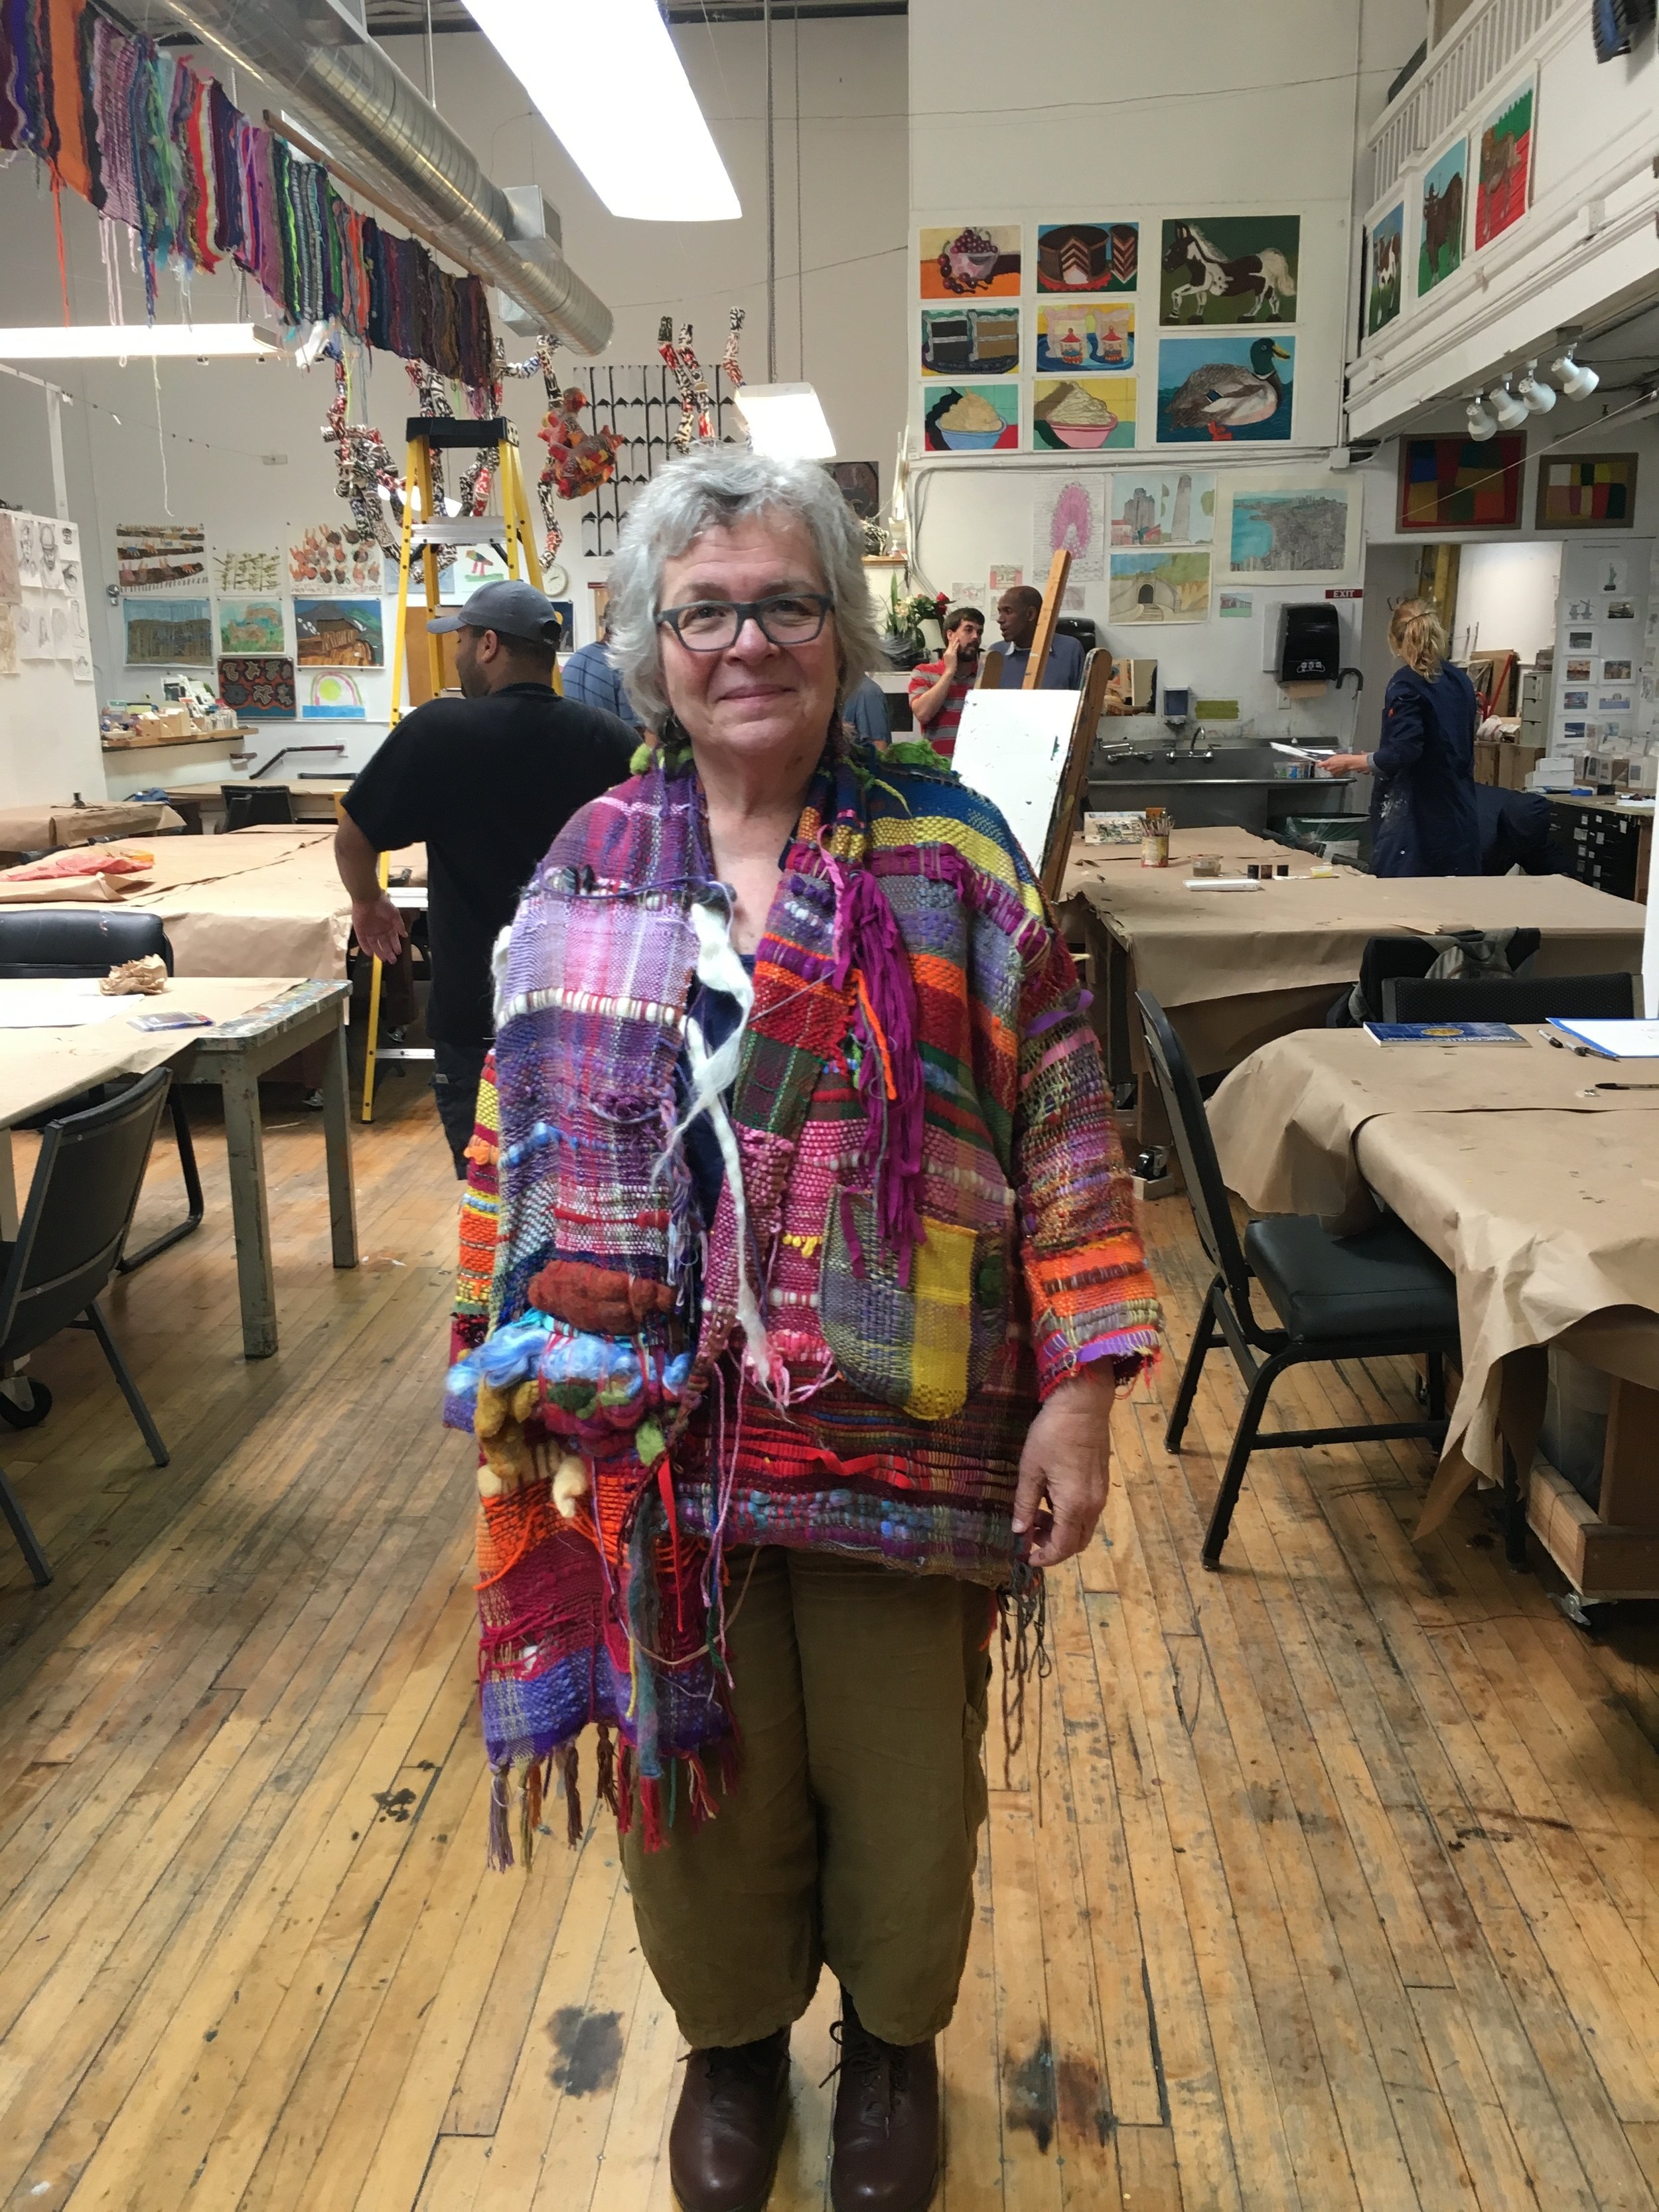 Executive Director Amy Taub wearing the fabulous SAORI woven jacket communally made by the artists and staff at Creativity Explored!!